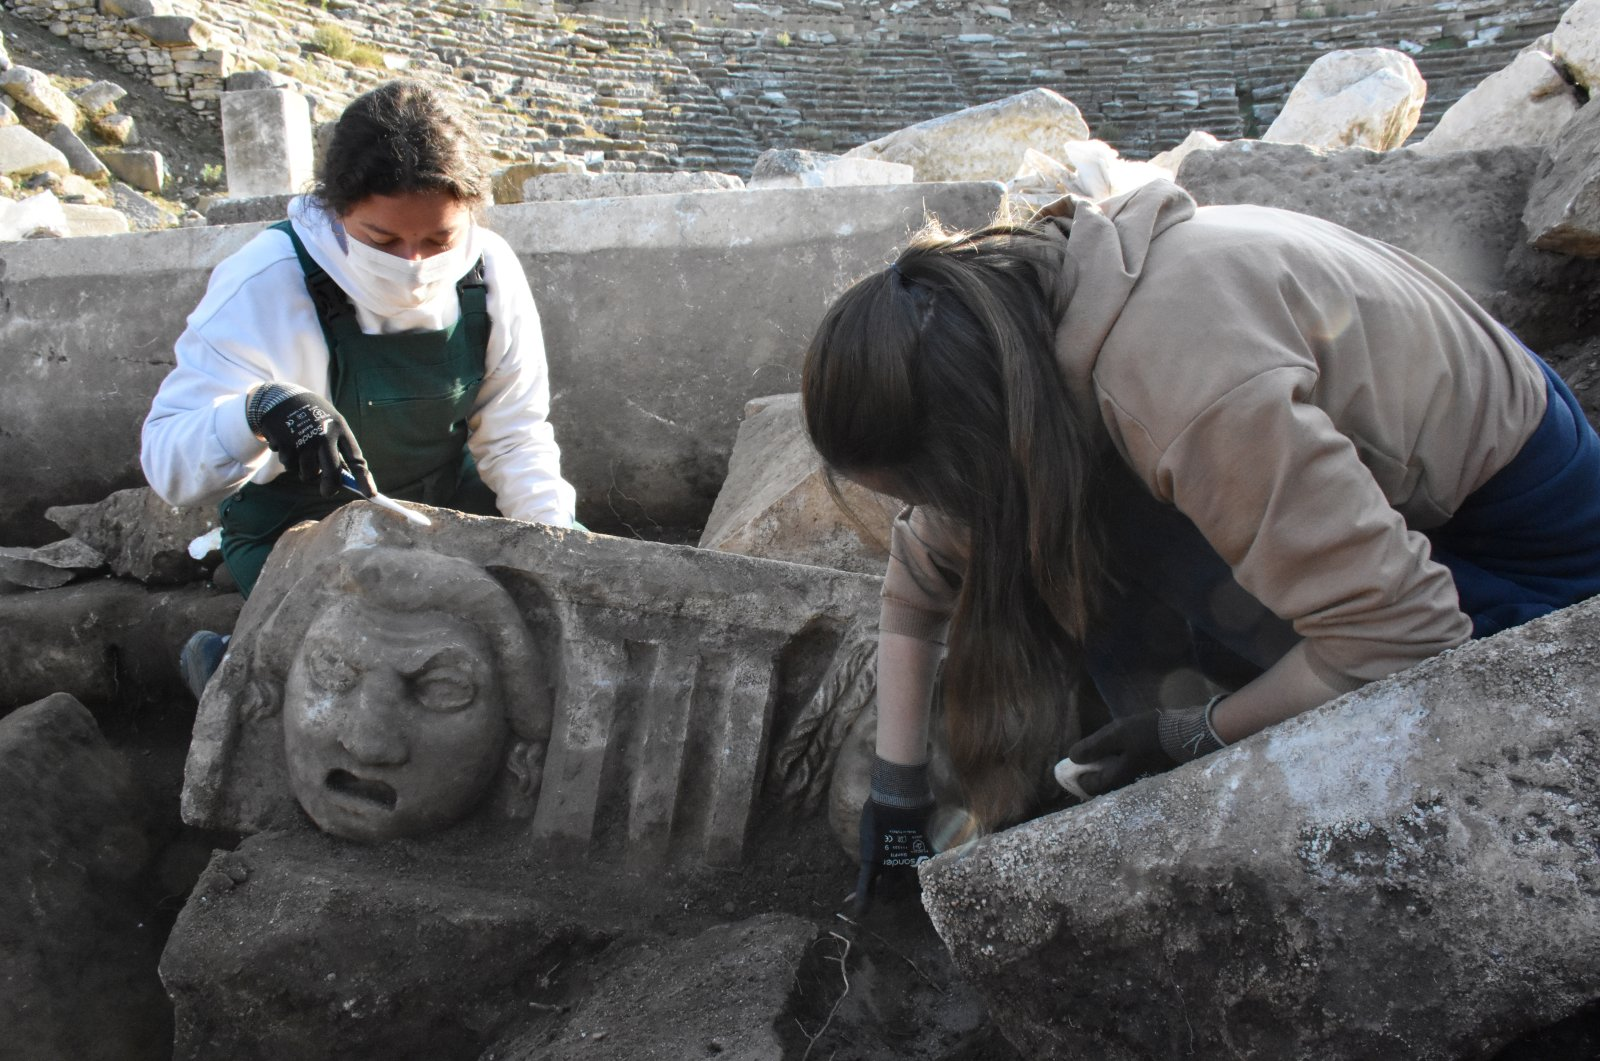 An archaeologist works on a face mask in the ancient city of Stratonikeia, Muğla, southwestern Turkey, Nov. 24, 2020. (AA PHOTO)